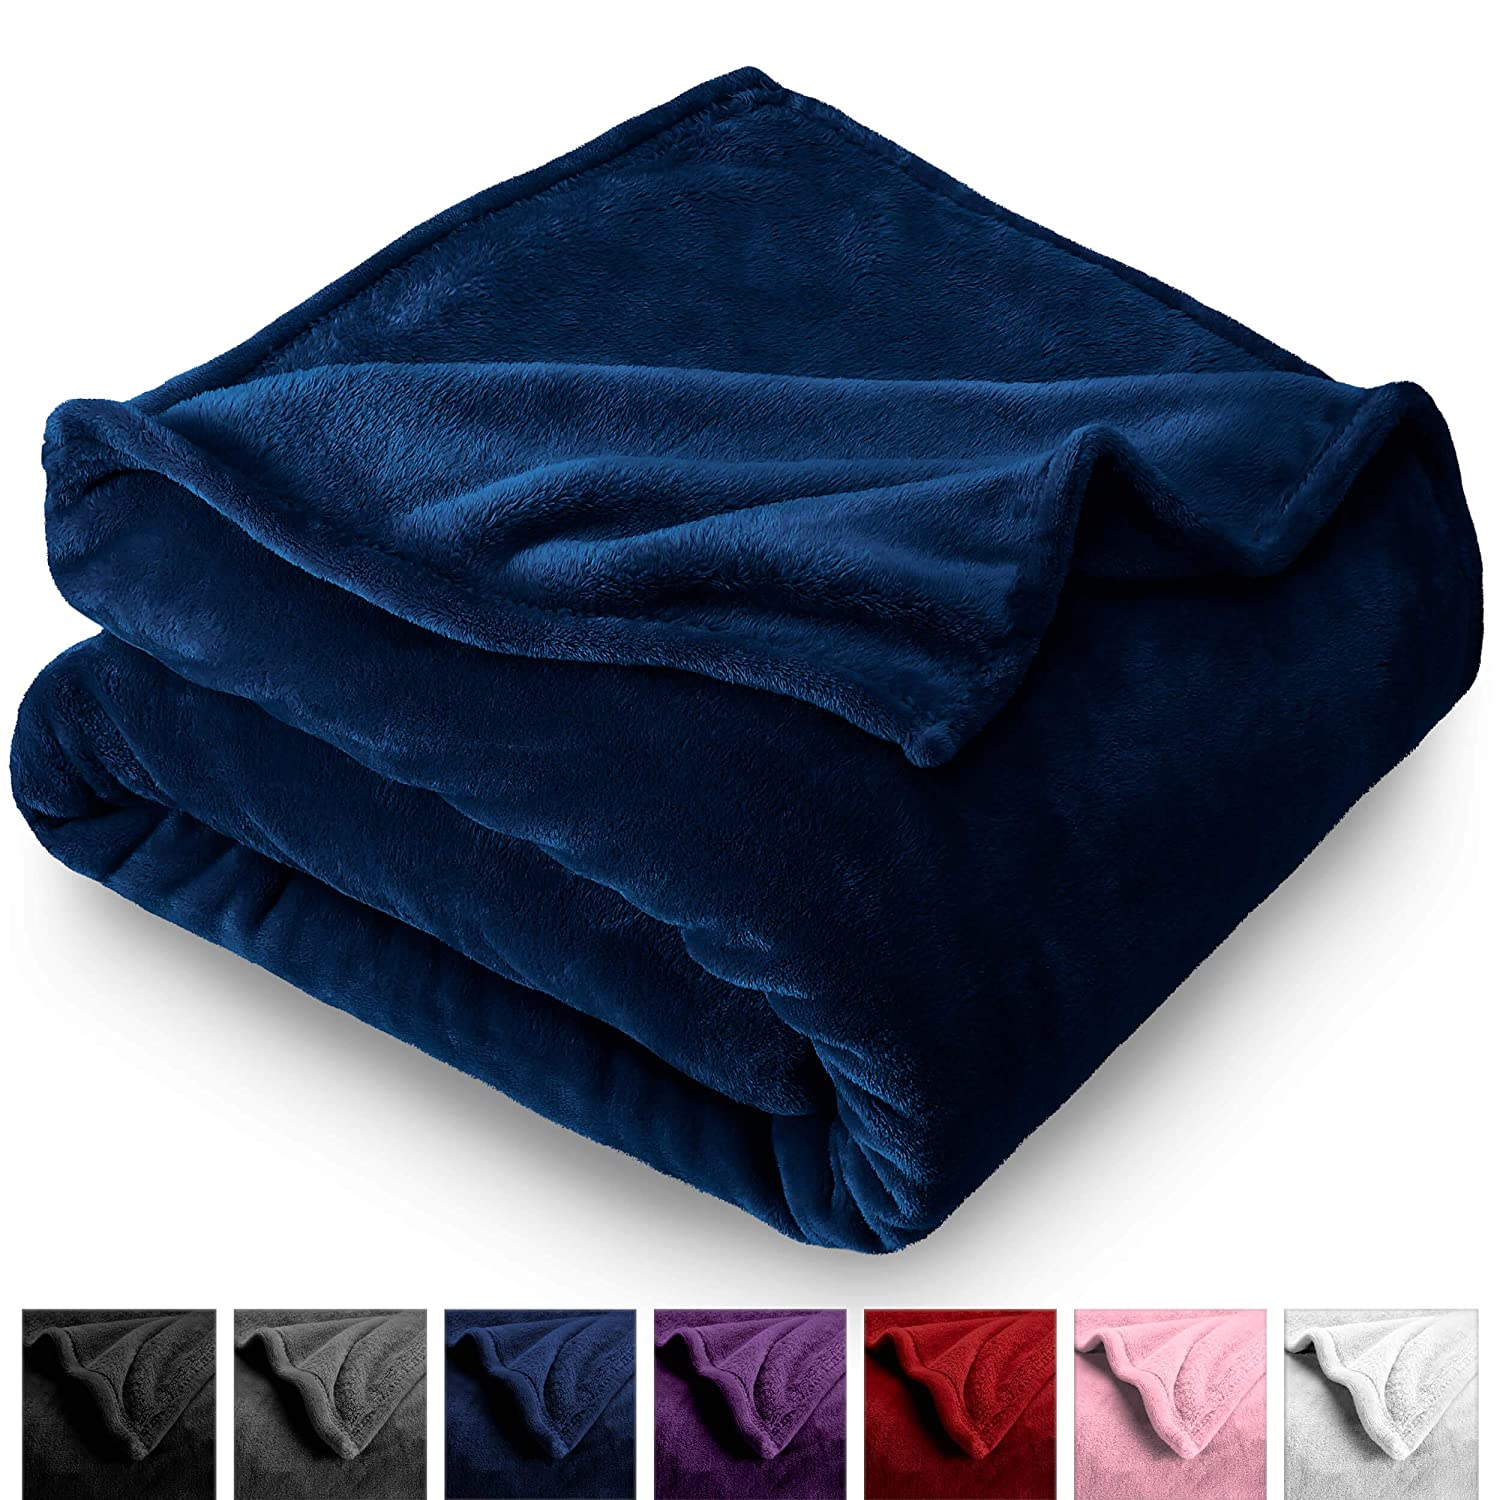 Bare Home Microplush Fleece Blanket - Full/Queen - Ultra-Soft Velvet - Luxurious Fuzzy Fleece Fur - Cozy Lightweight - Easy Care - All Season Premium Bed Blanket (Full/Queen, Dark Blue)